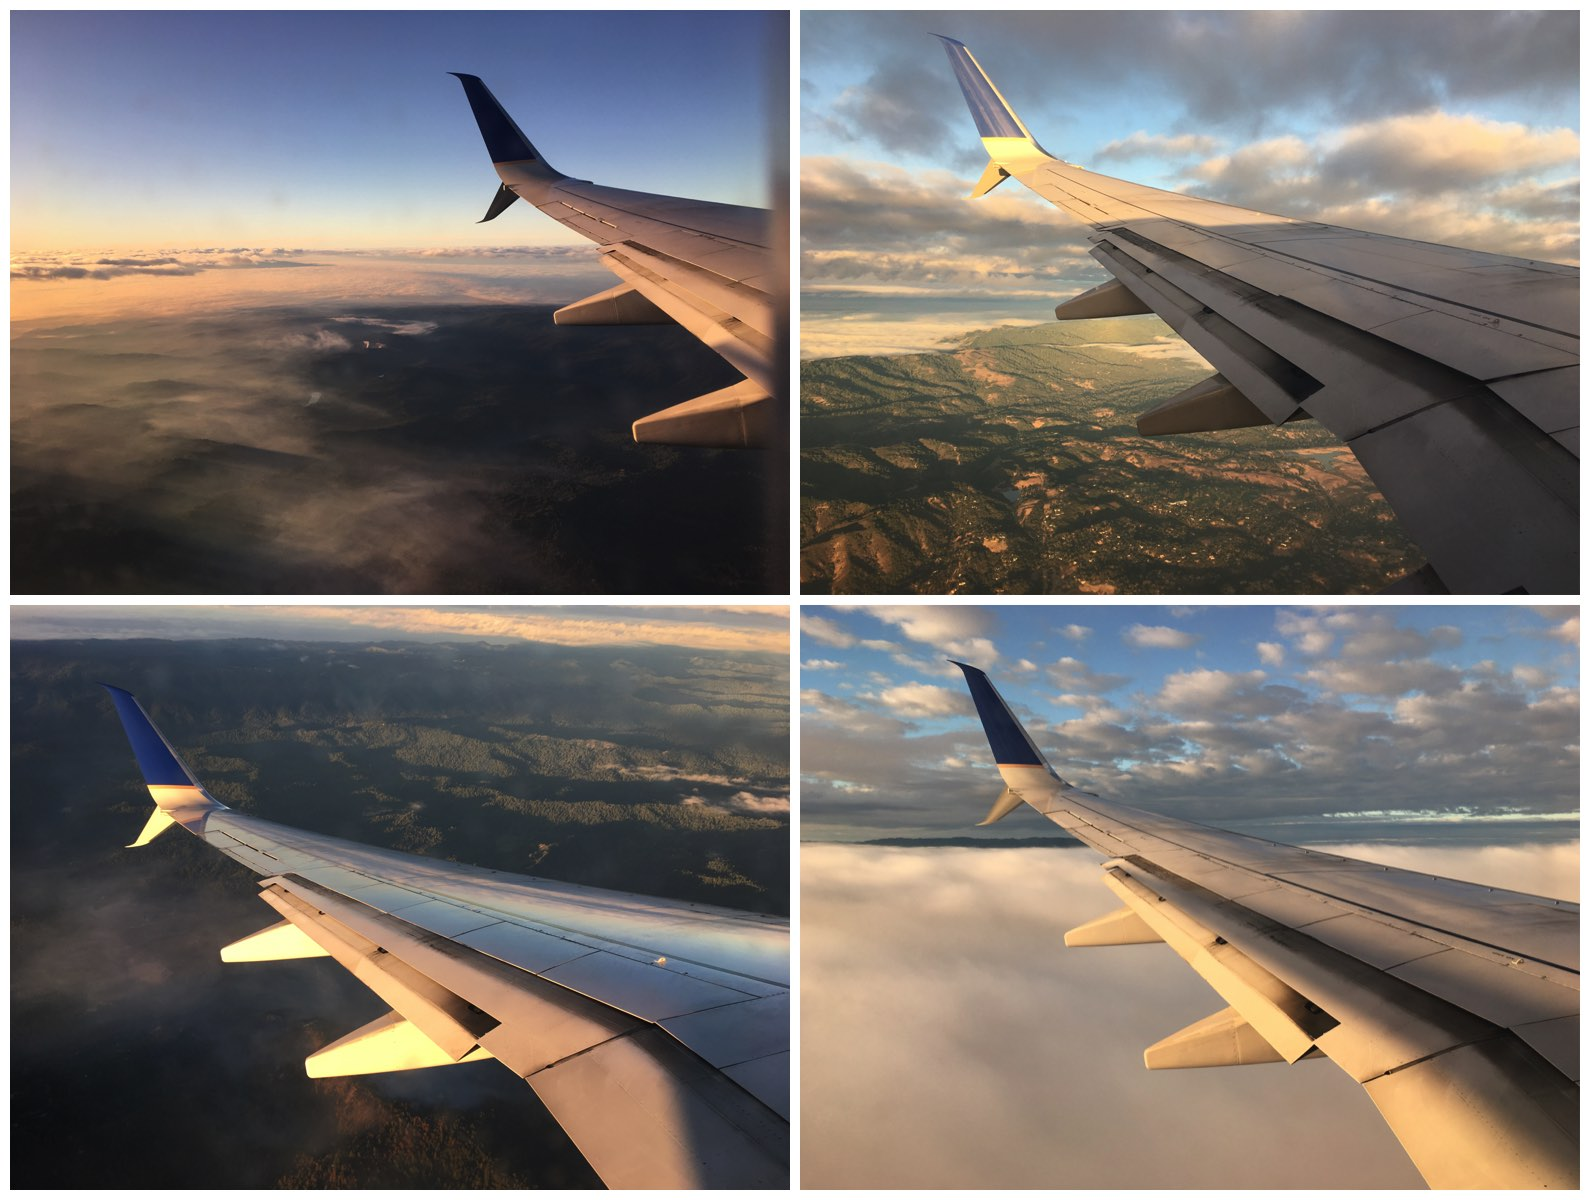 Descending into SFO United Airlines 737–800